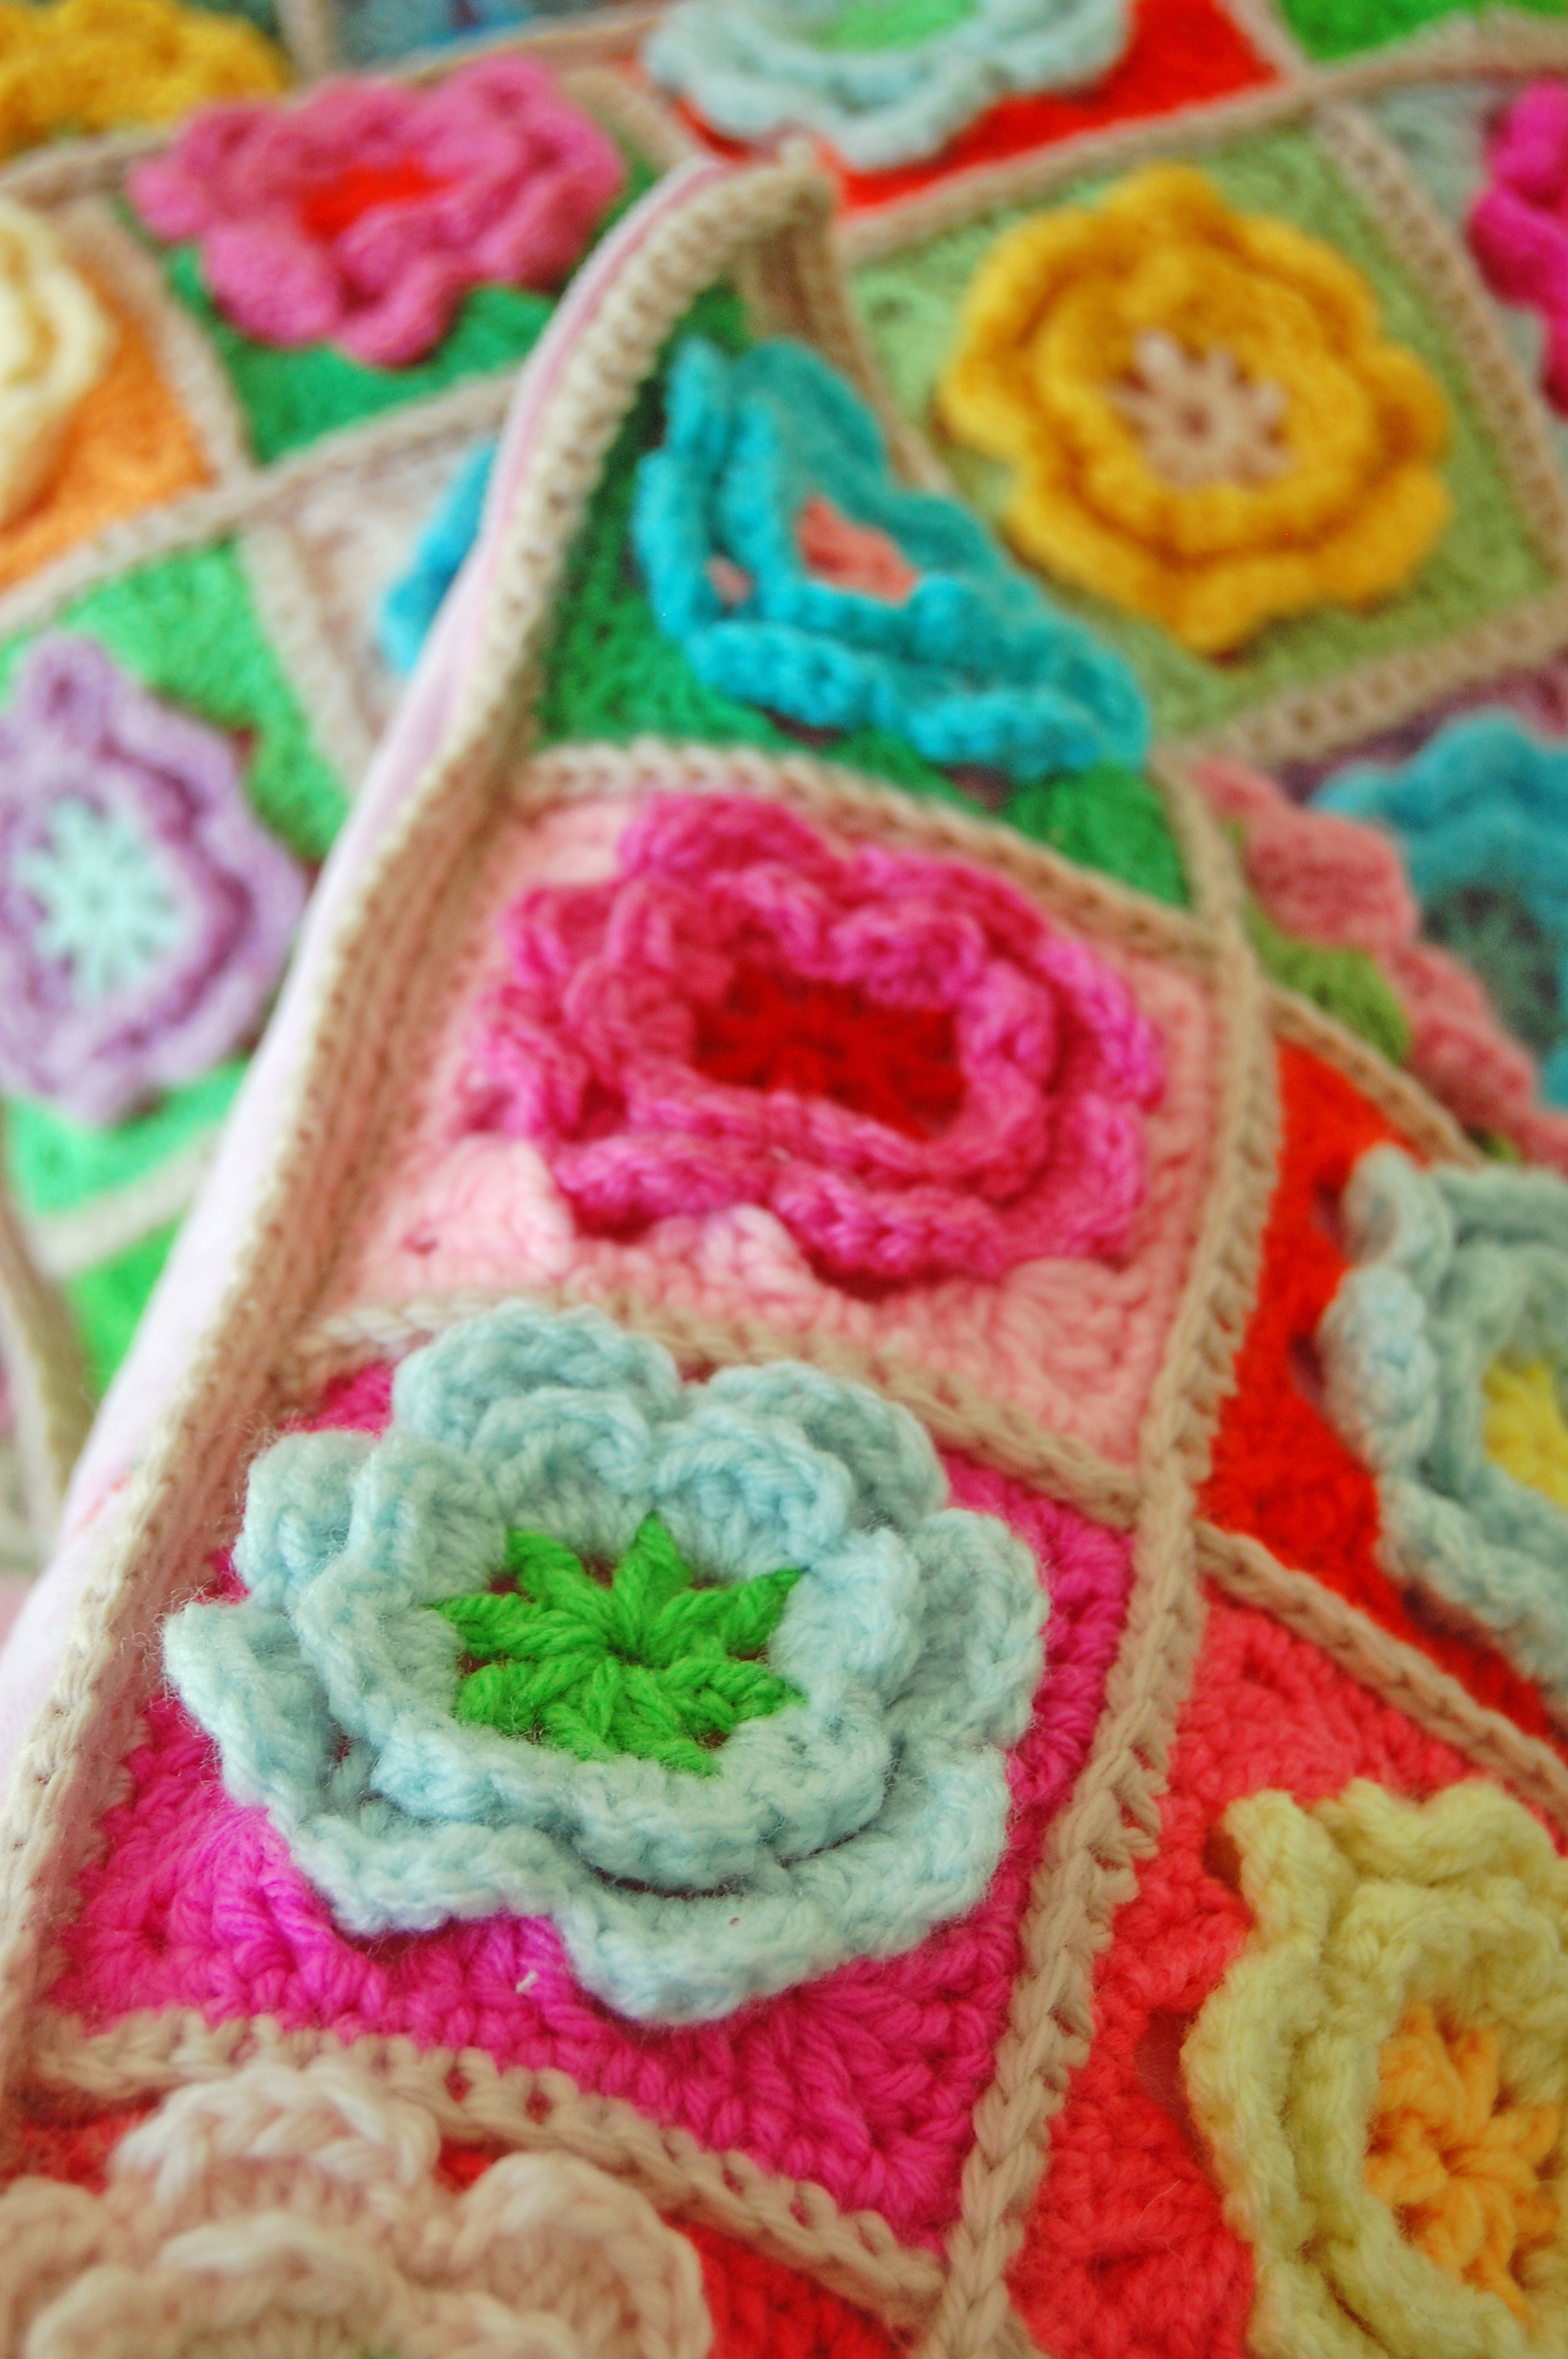 granny square patterns | eBay - Electronics, Cars, Fashion